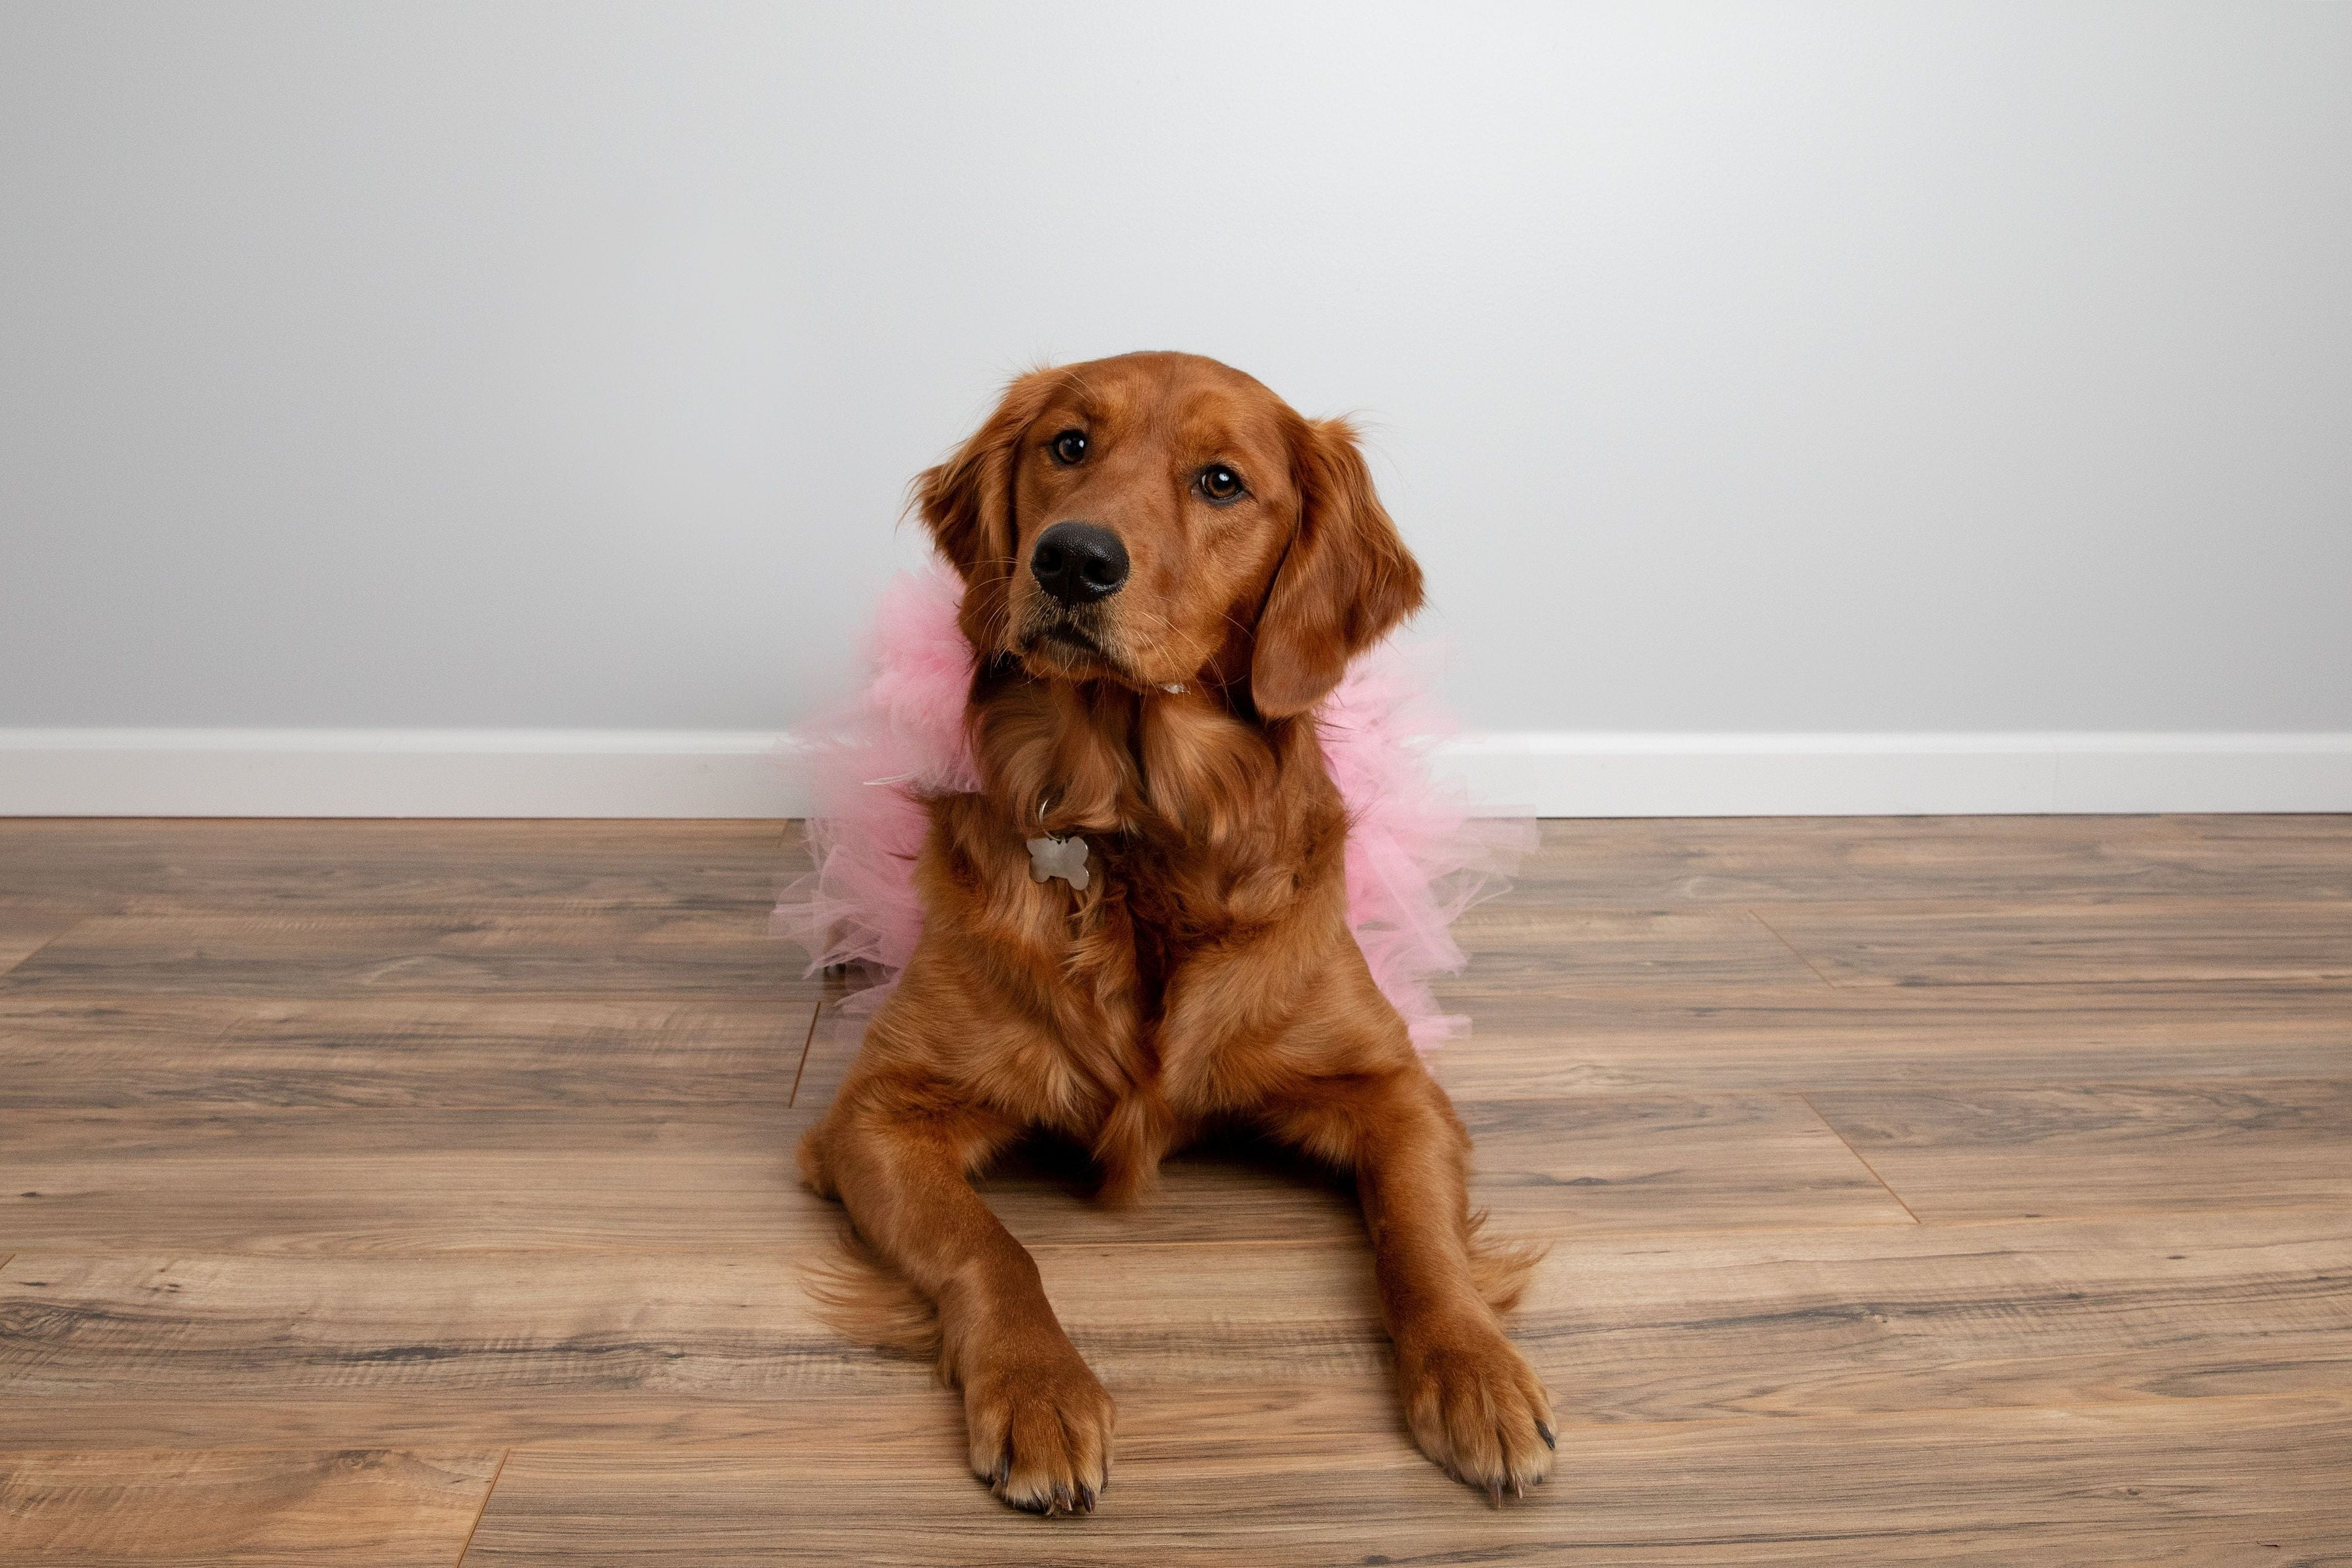 large dog tutu, tutu joli, extra large dog tutu, pet tutu, pet accessories, dog outfit XXL, tutu joli light pink dog tutu skirt, light pink dog tutu xs, light pink dog tutu s, pink dog tutu size m, pink dog tutu size L, light pink dog tutu size xl, pink dog tutu size xxl, pink dog tutu size xxxl. large dog tutu in pink, pink dog birthday tutu, dog birthday outfit, pink pet tutus, light pink pet costume, dog princess outfit pink